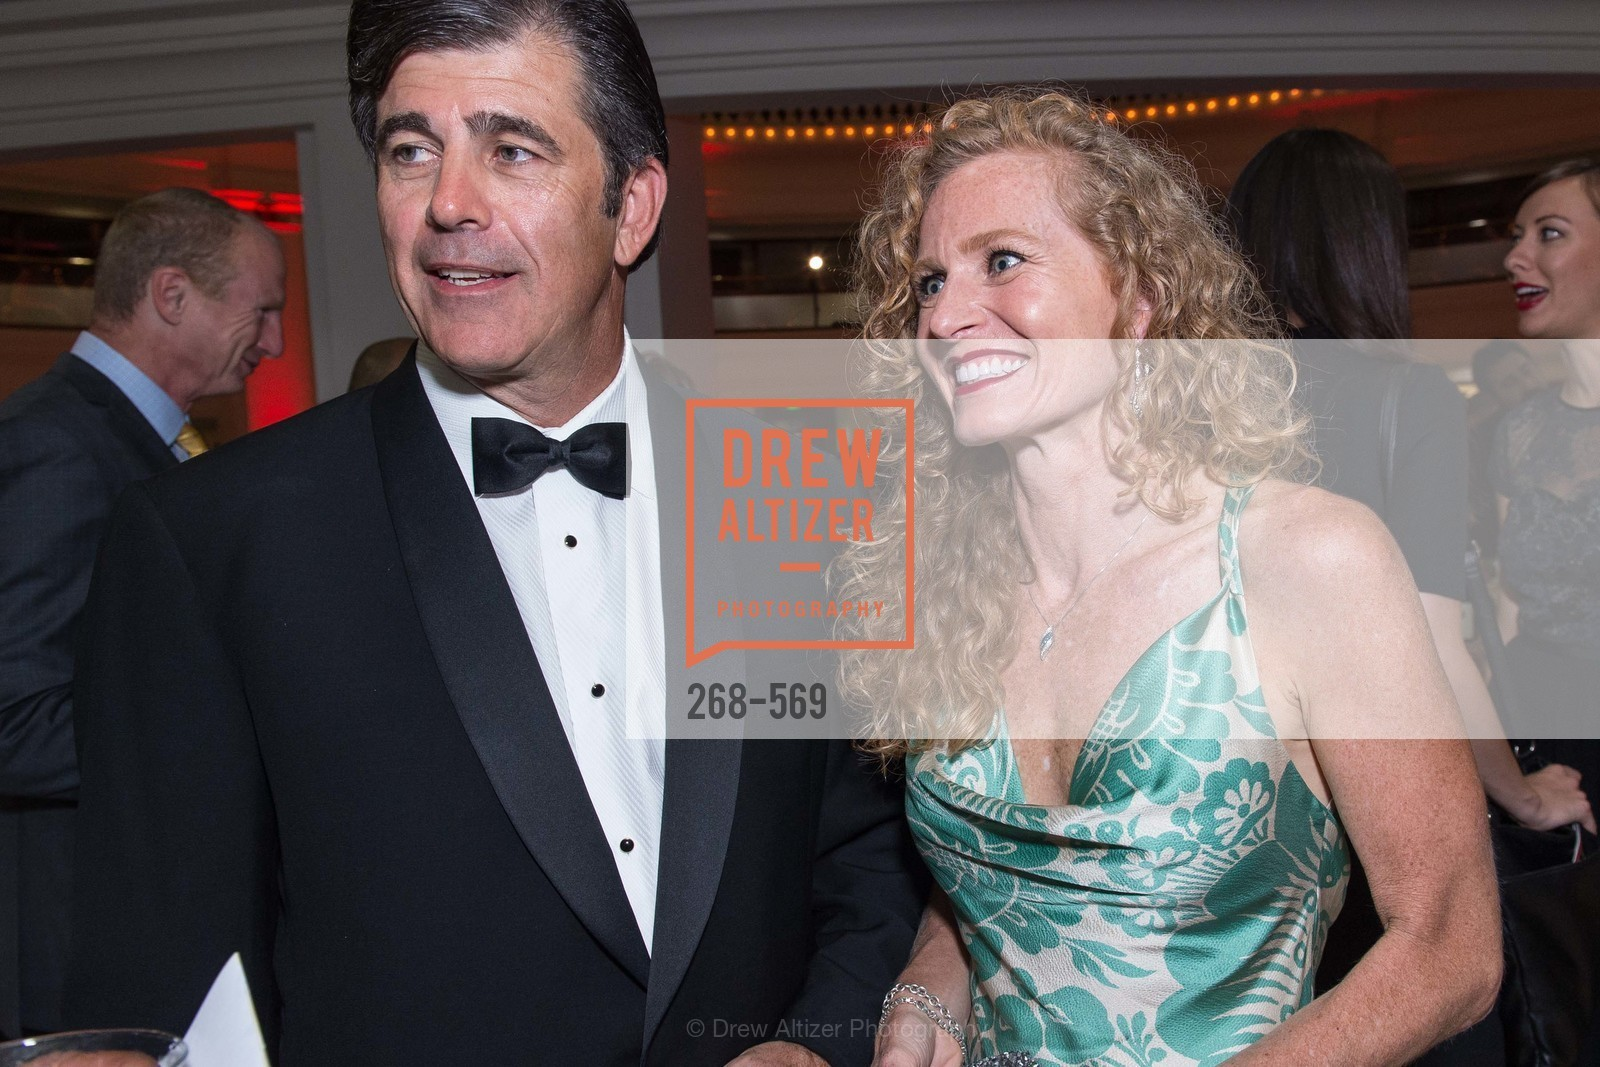 John Protopappas, Laurie Edwards, CHABOT Science Center STARLIGHT GALA, US, September 20th, 2014,Drew Altizer, Drew Altizer Photography, full-service agency, private events, San Francisco photographer, photographer california